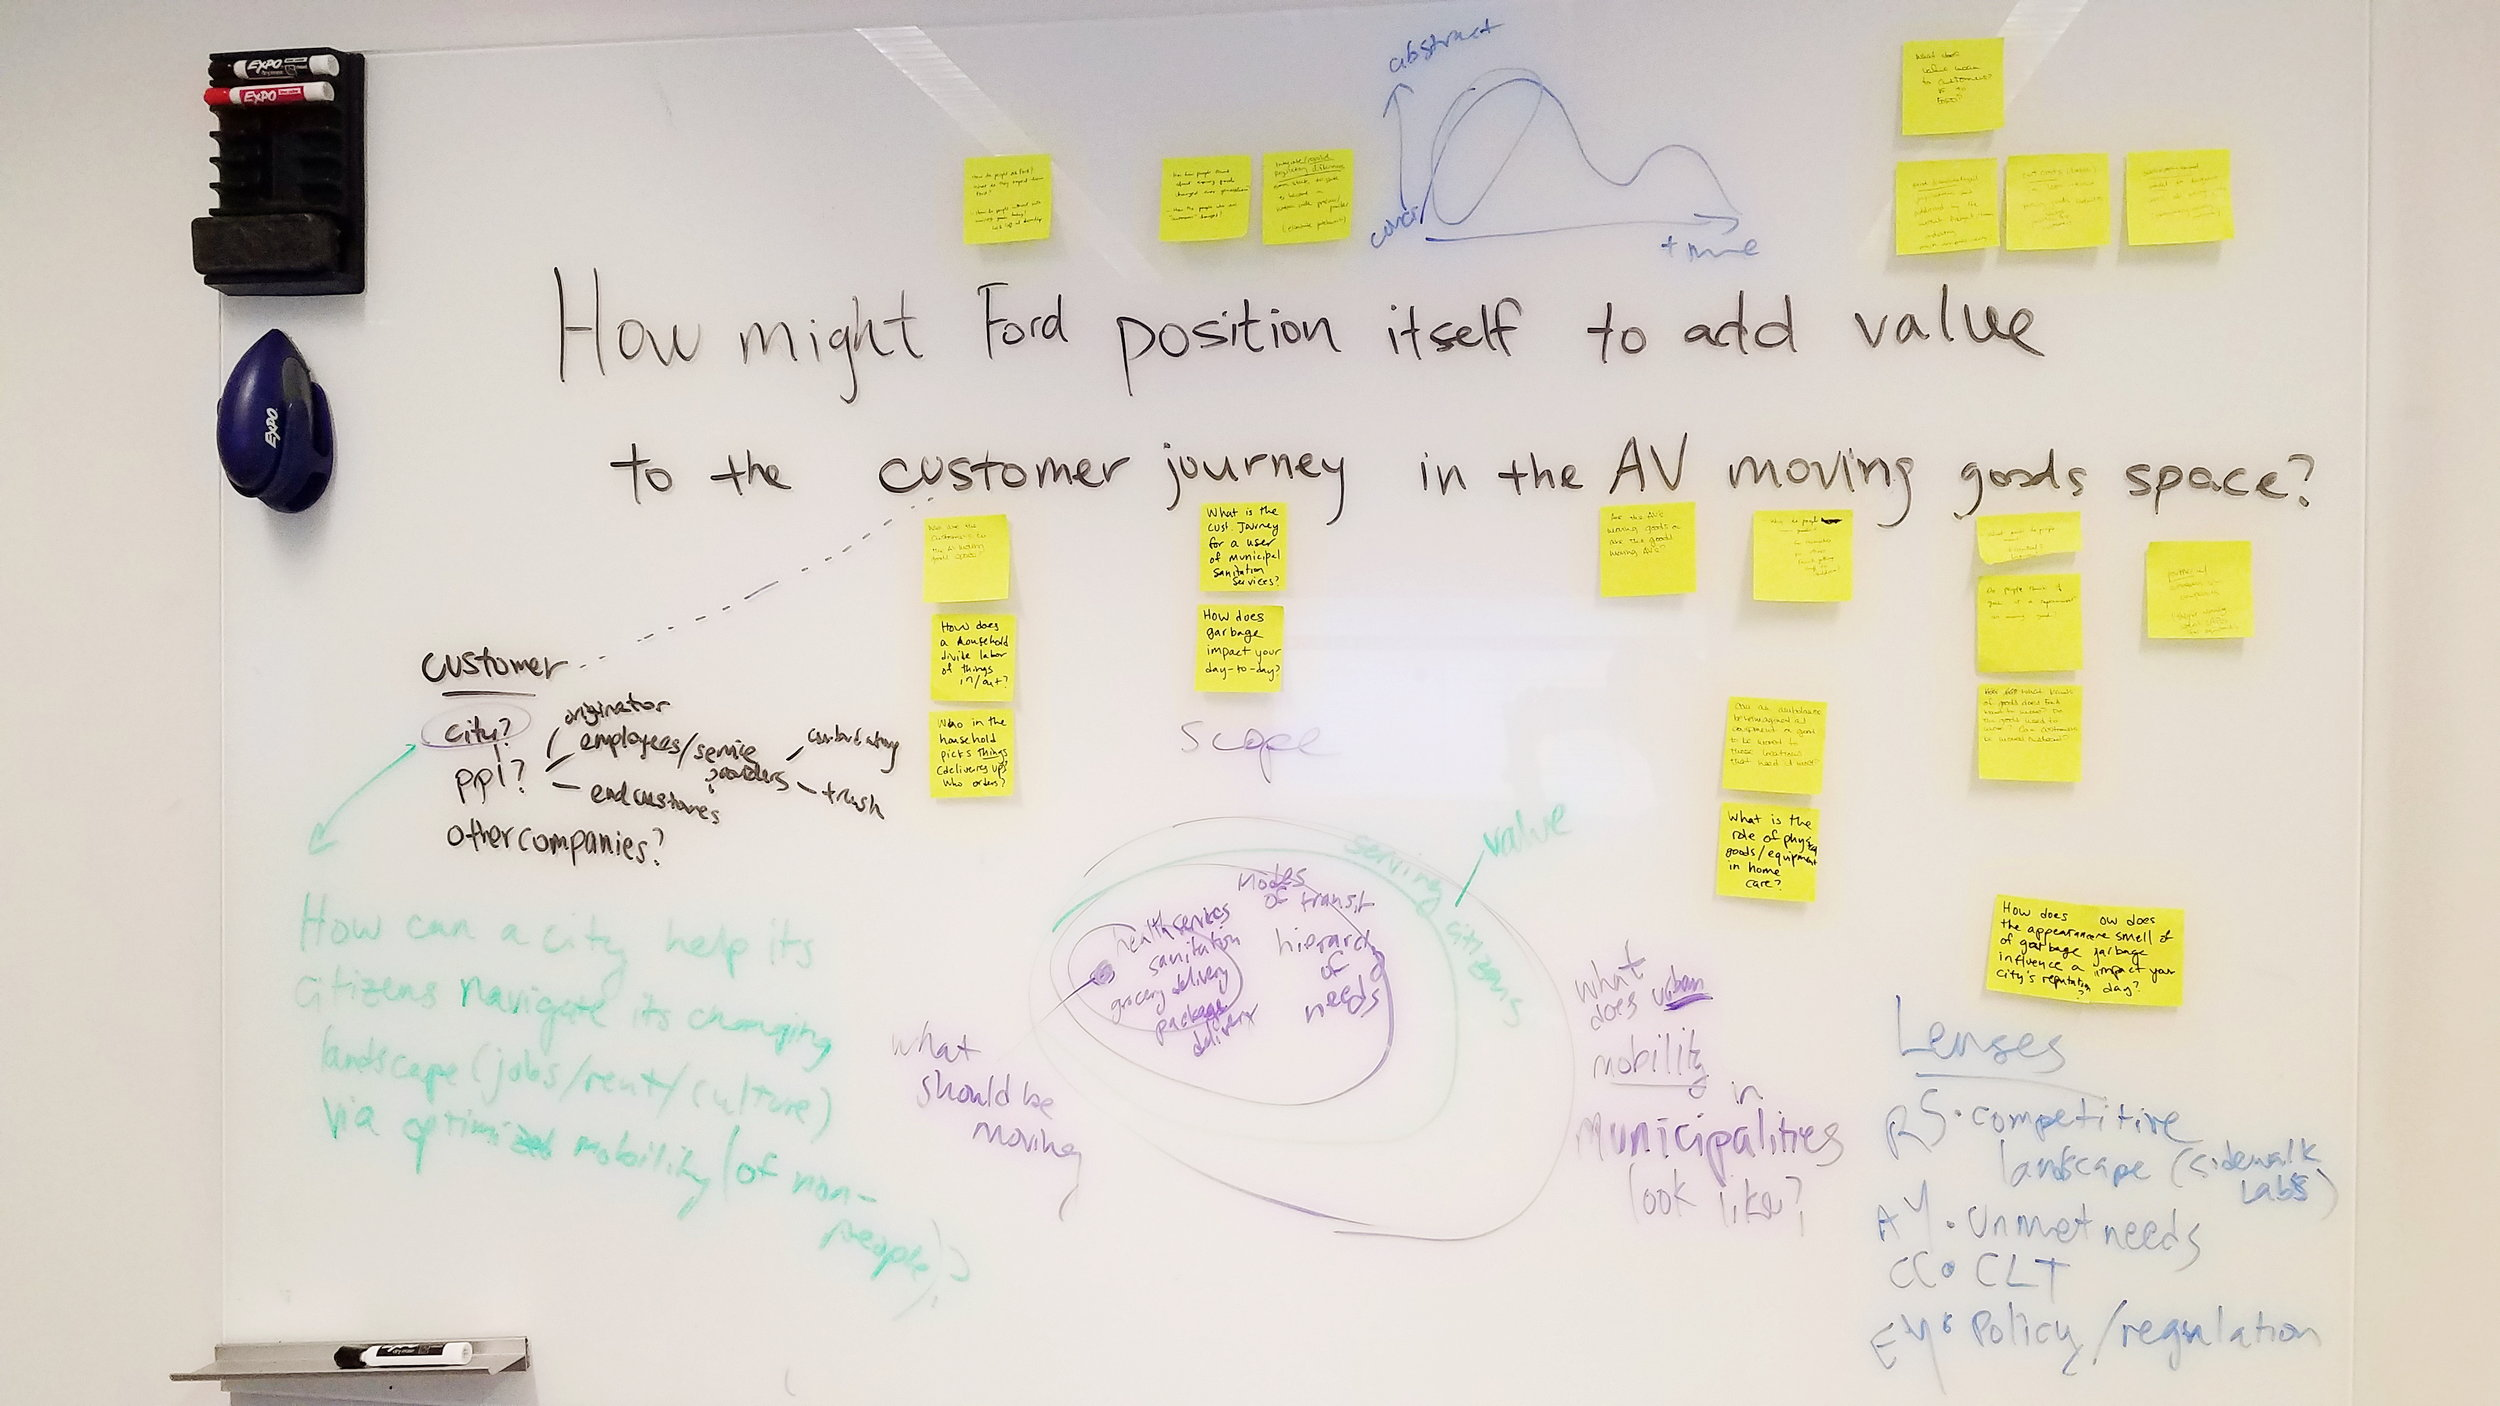 Notes from our team's re-framing and scoping session.